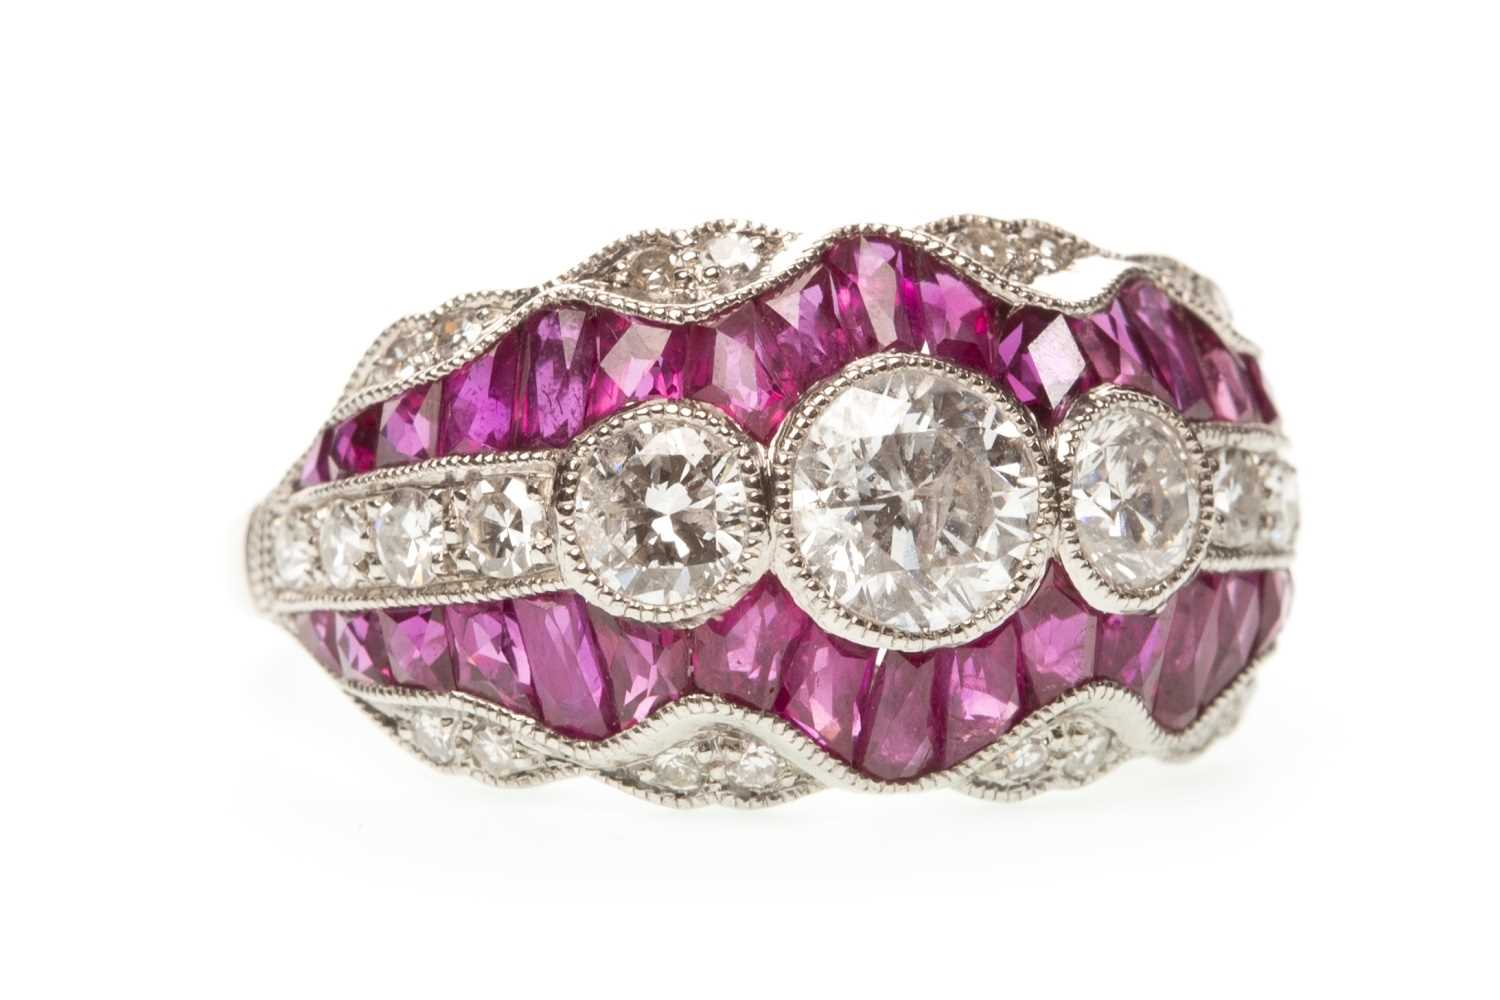 Lot 164-A RUBY AND DIAMOND RING